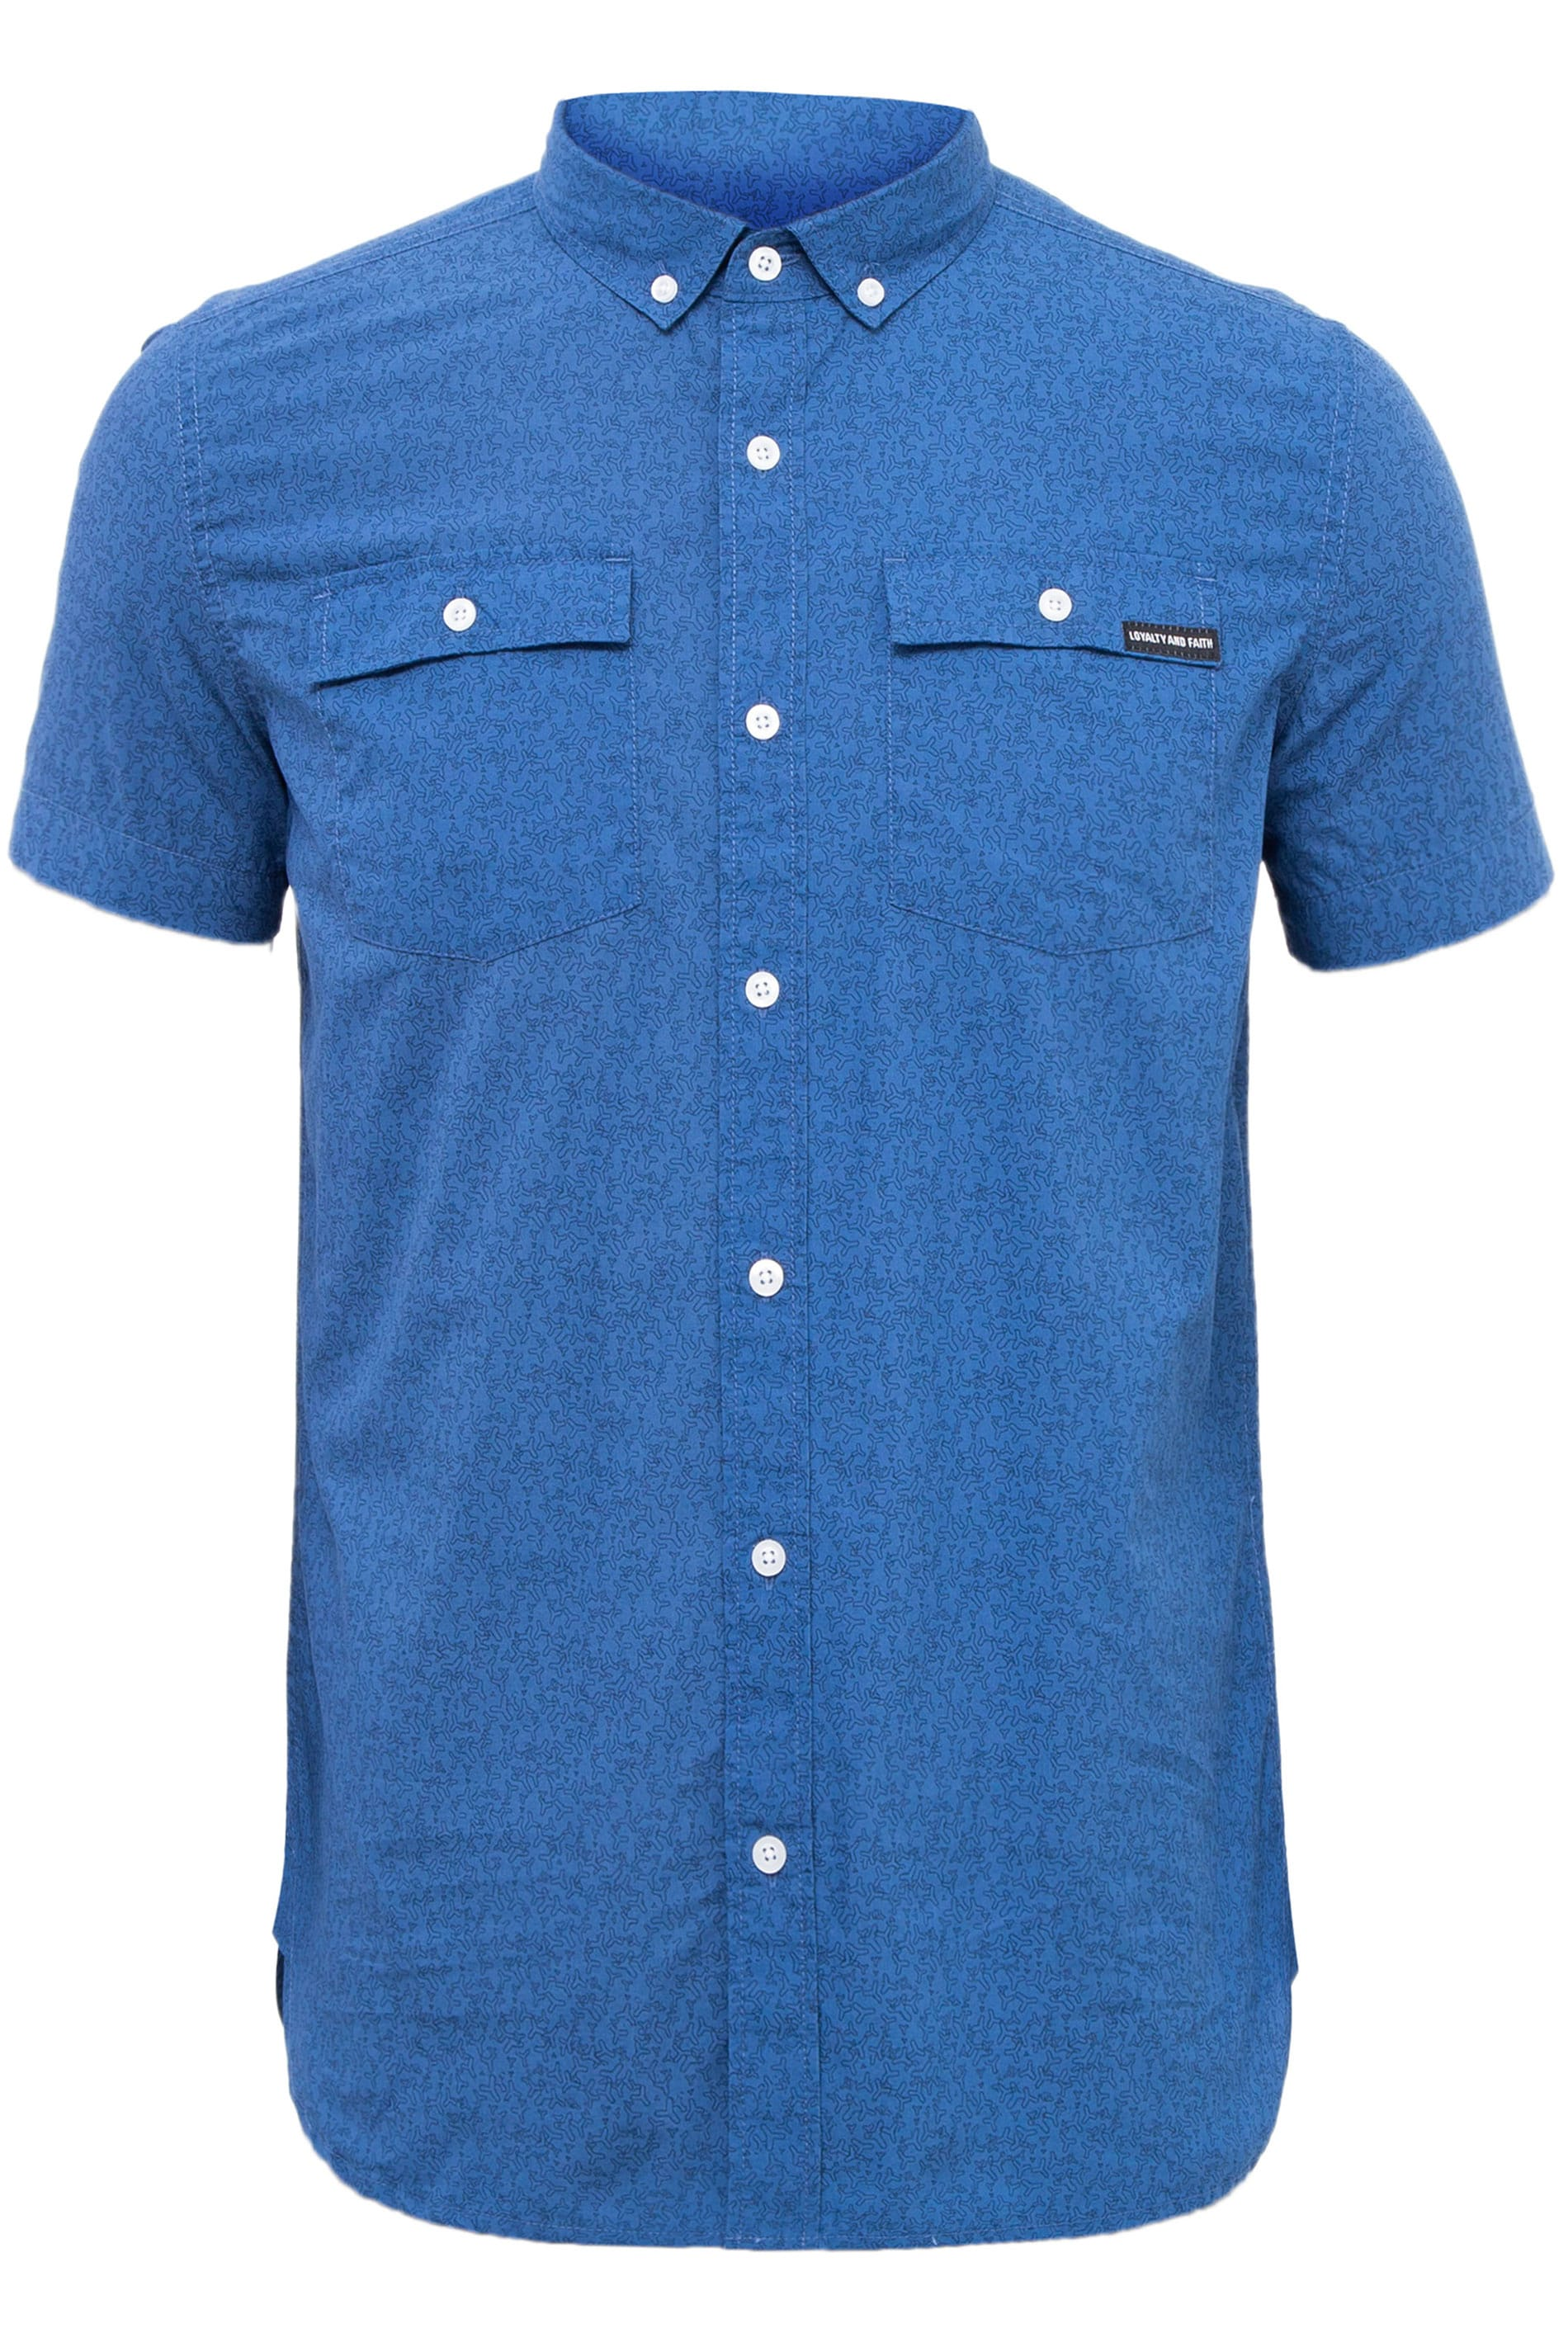 LOYALTY & FAITH Blue Printed Button Down Shirt